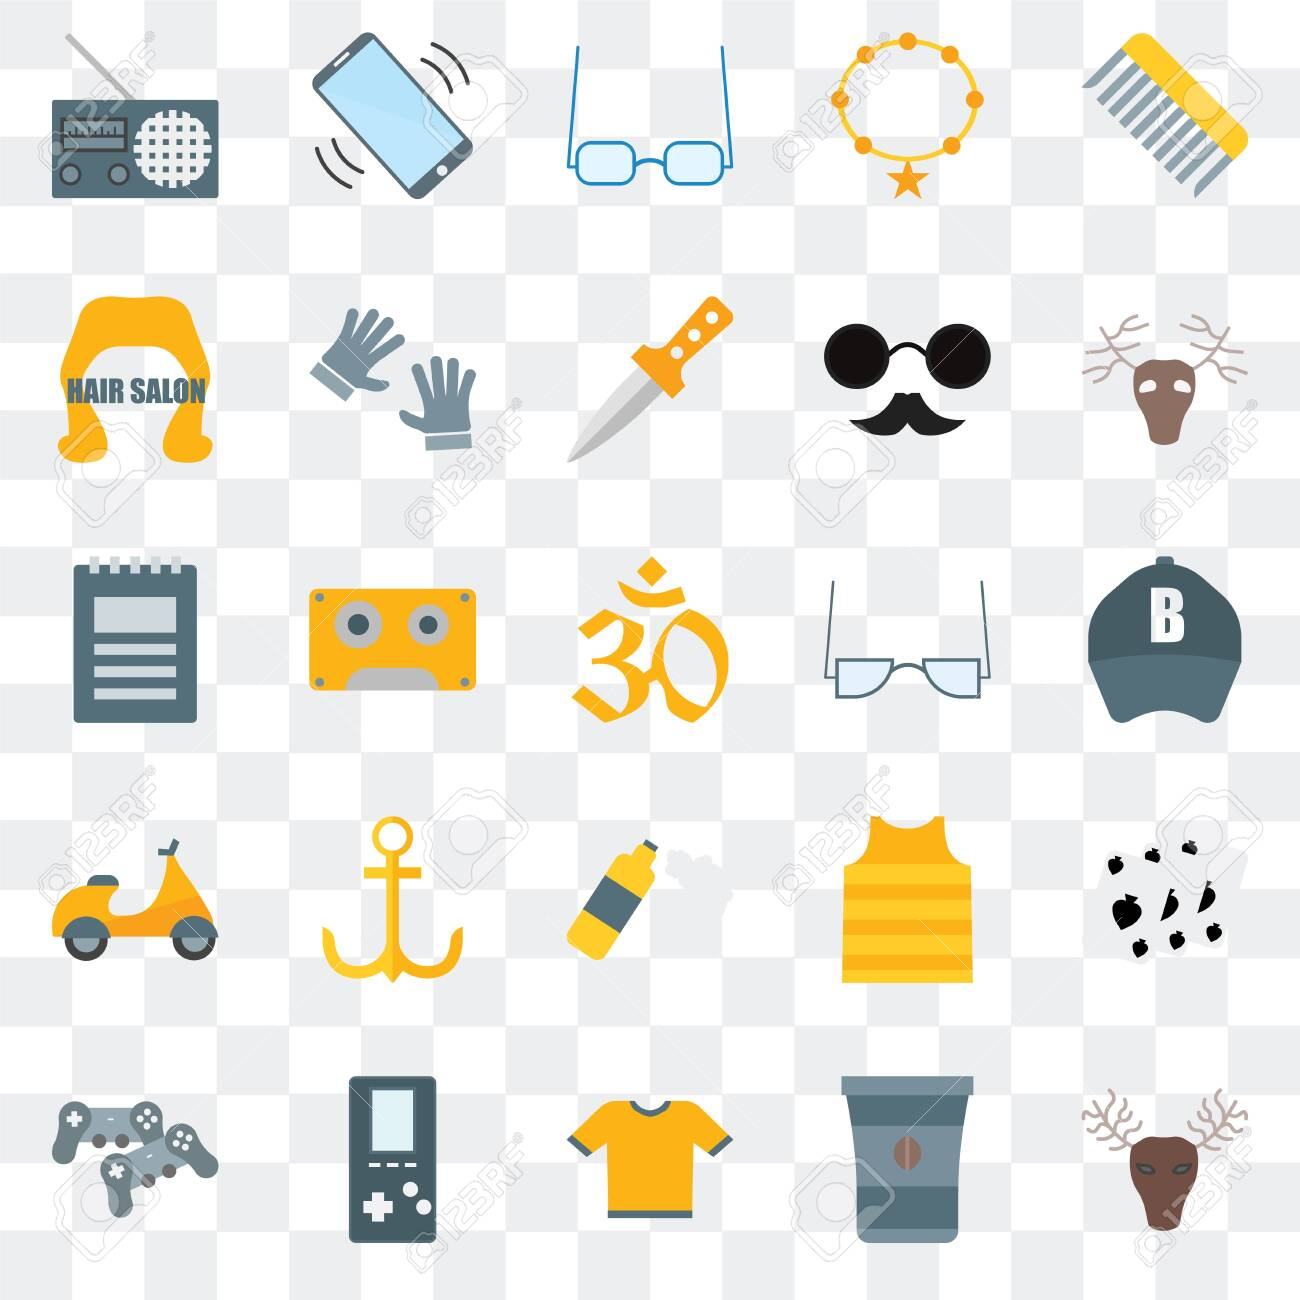 Set Of 25 transparent icons such as Hunted, Coffee cup, Shirt, Gamepad, Deer, Accessory, Foam, Hair salon, Sunglasses, Phone call, web UI transparency icon pack - 130332345